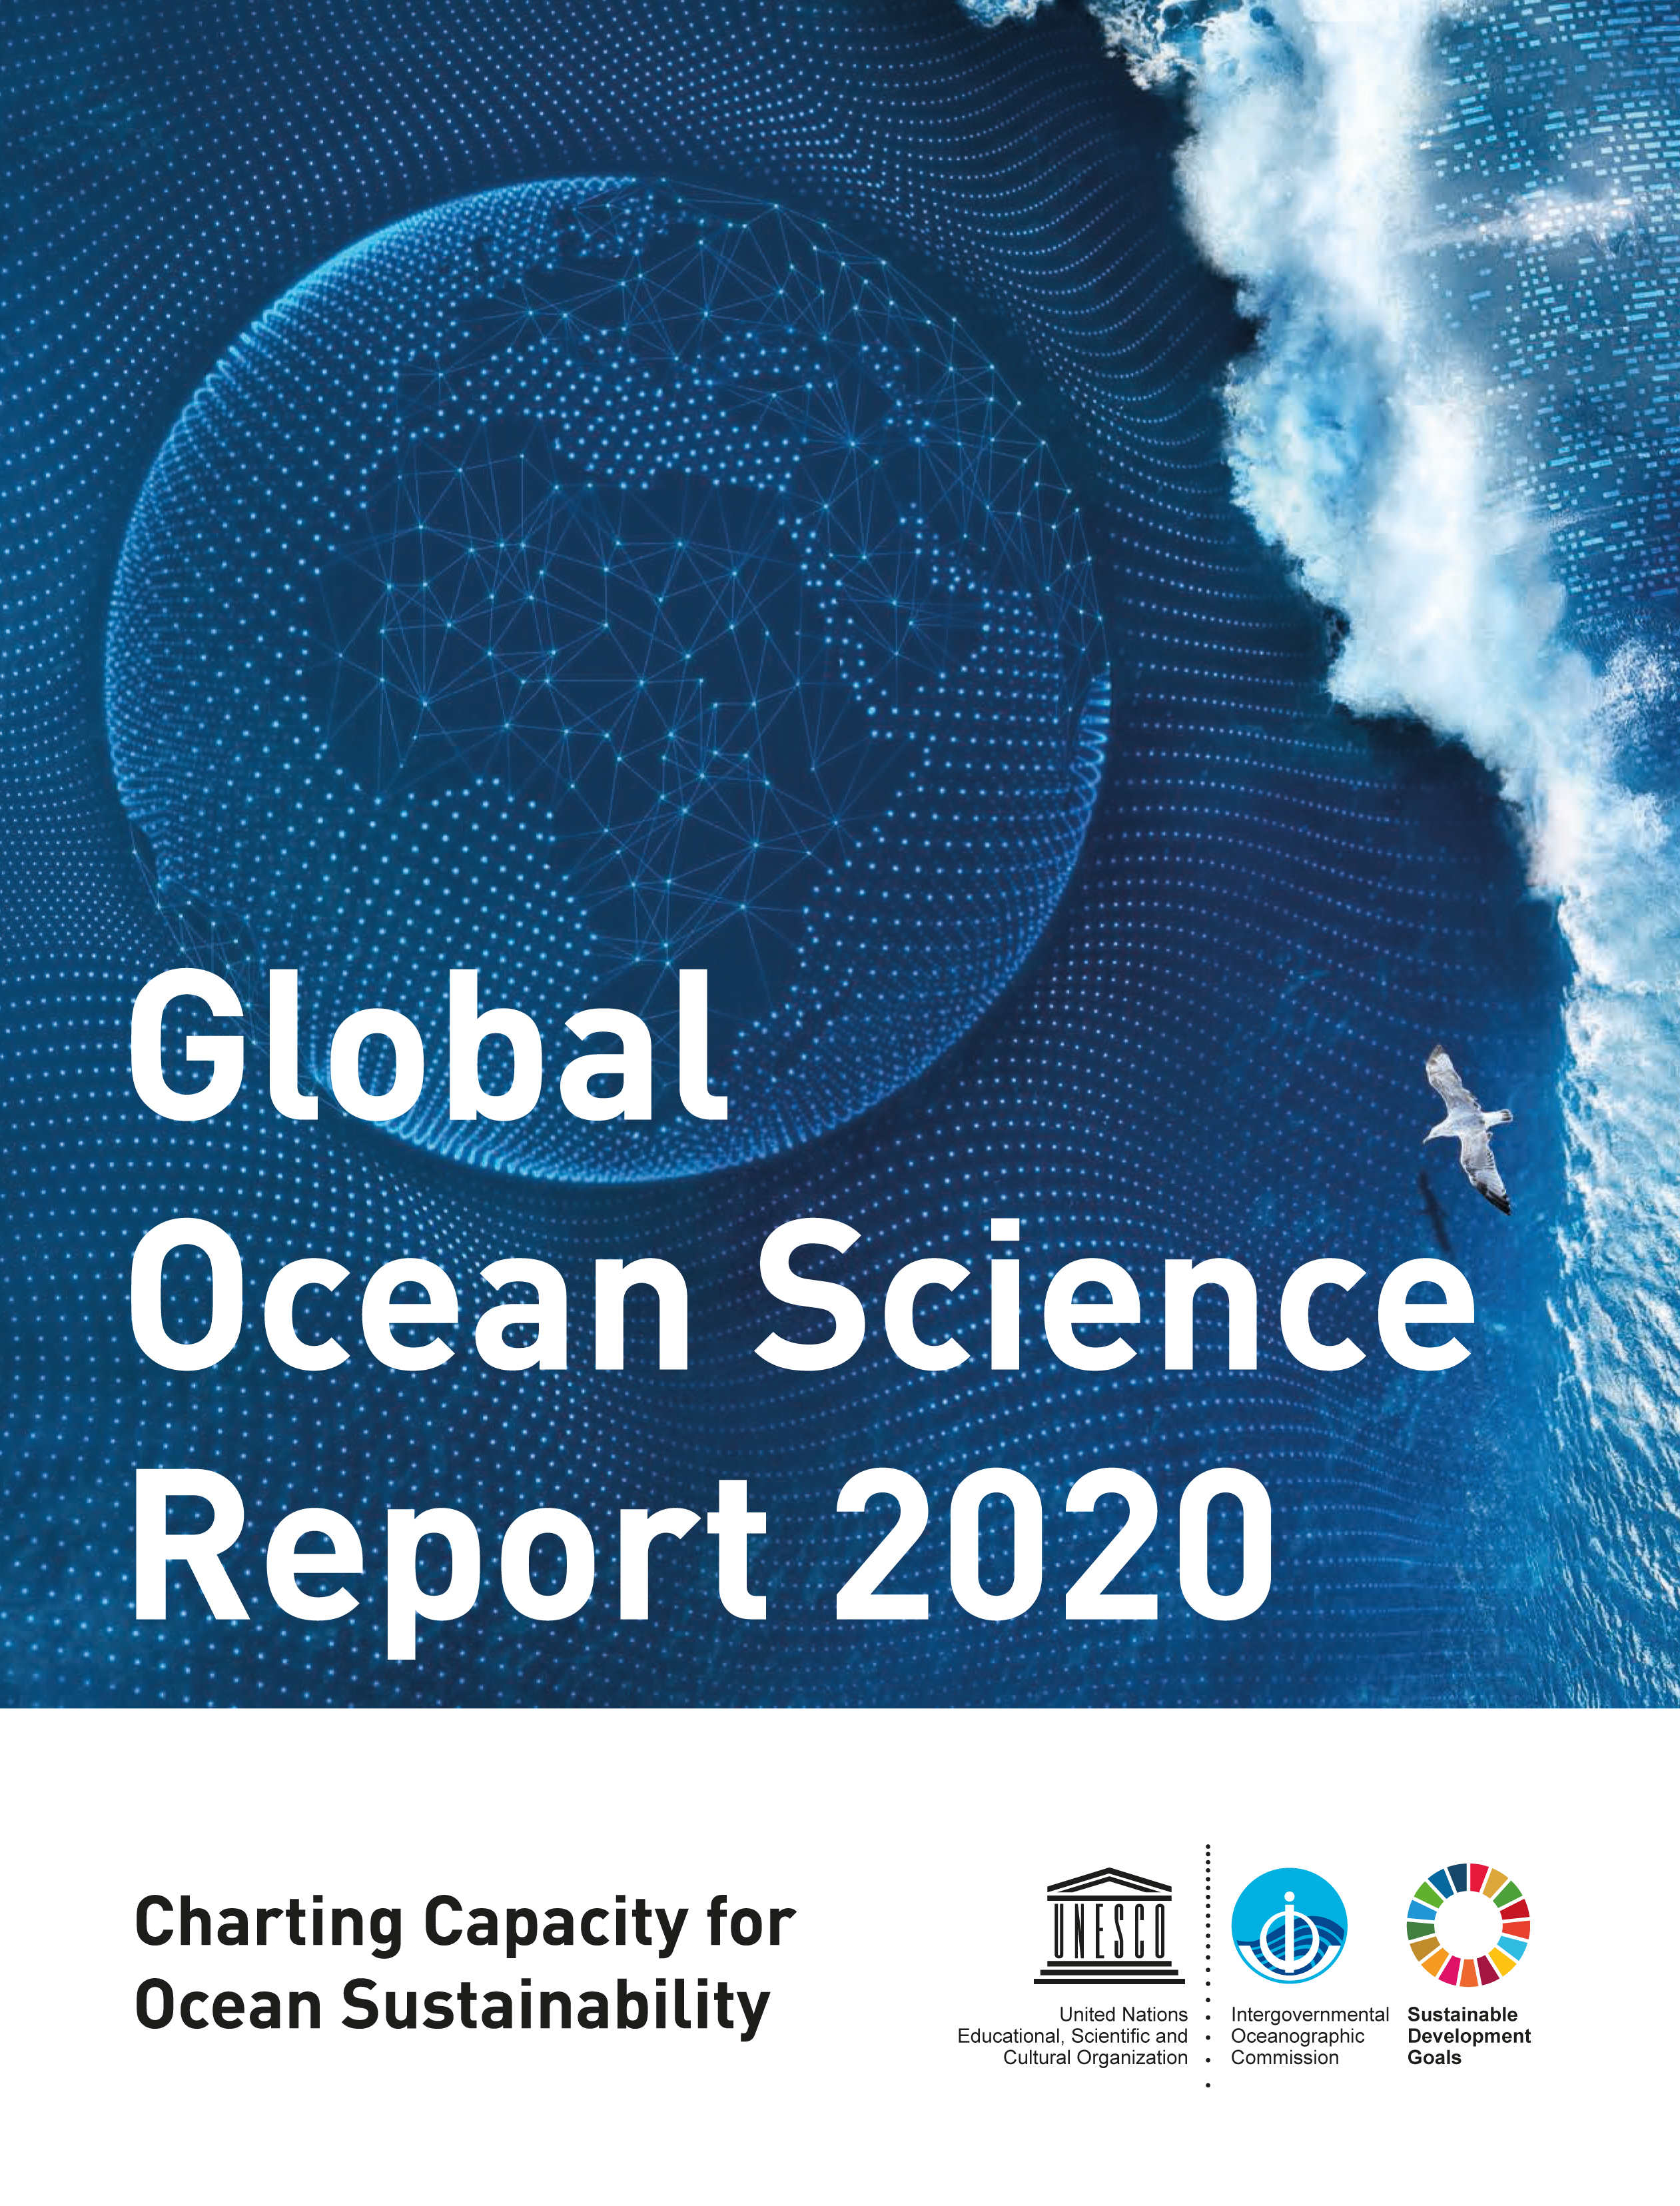 GLOBAL OCEAN SCIENCE RPT 2020